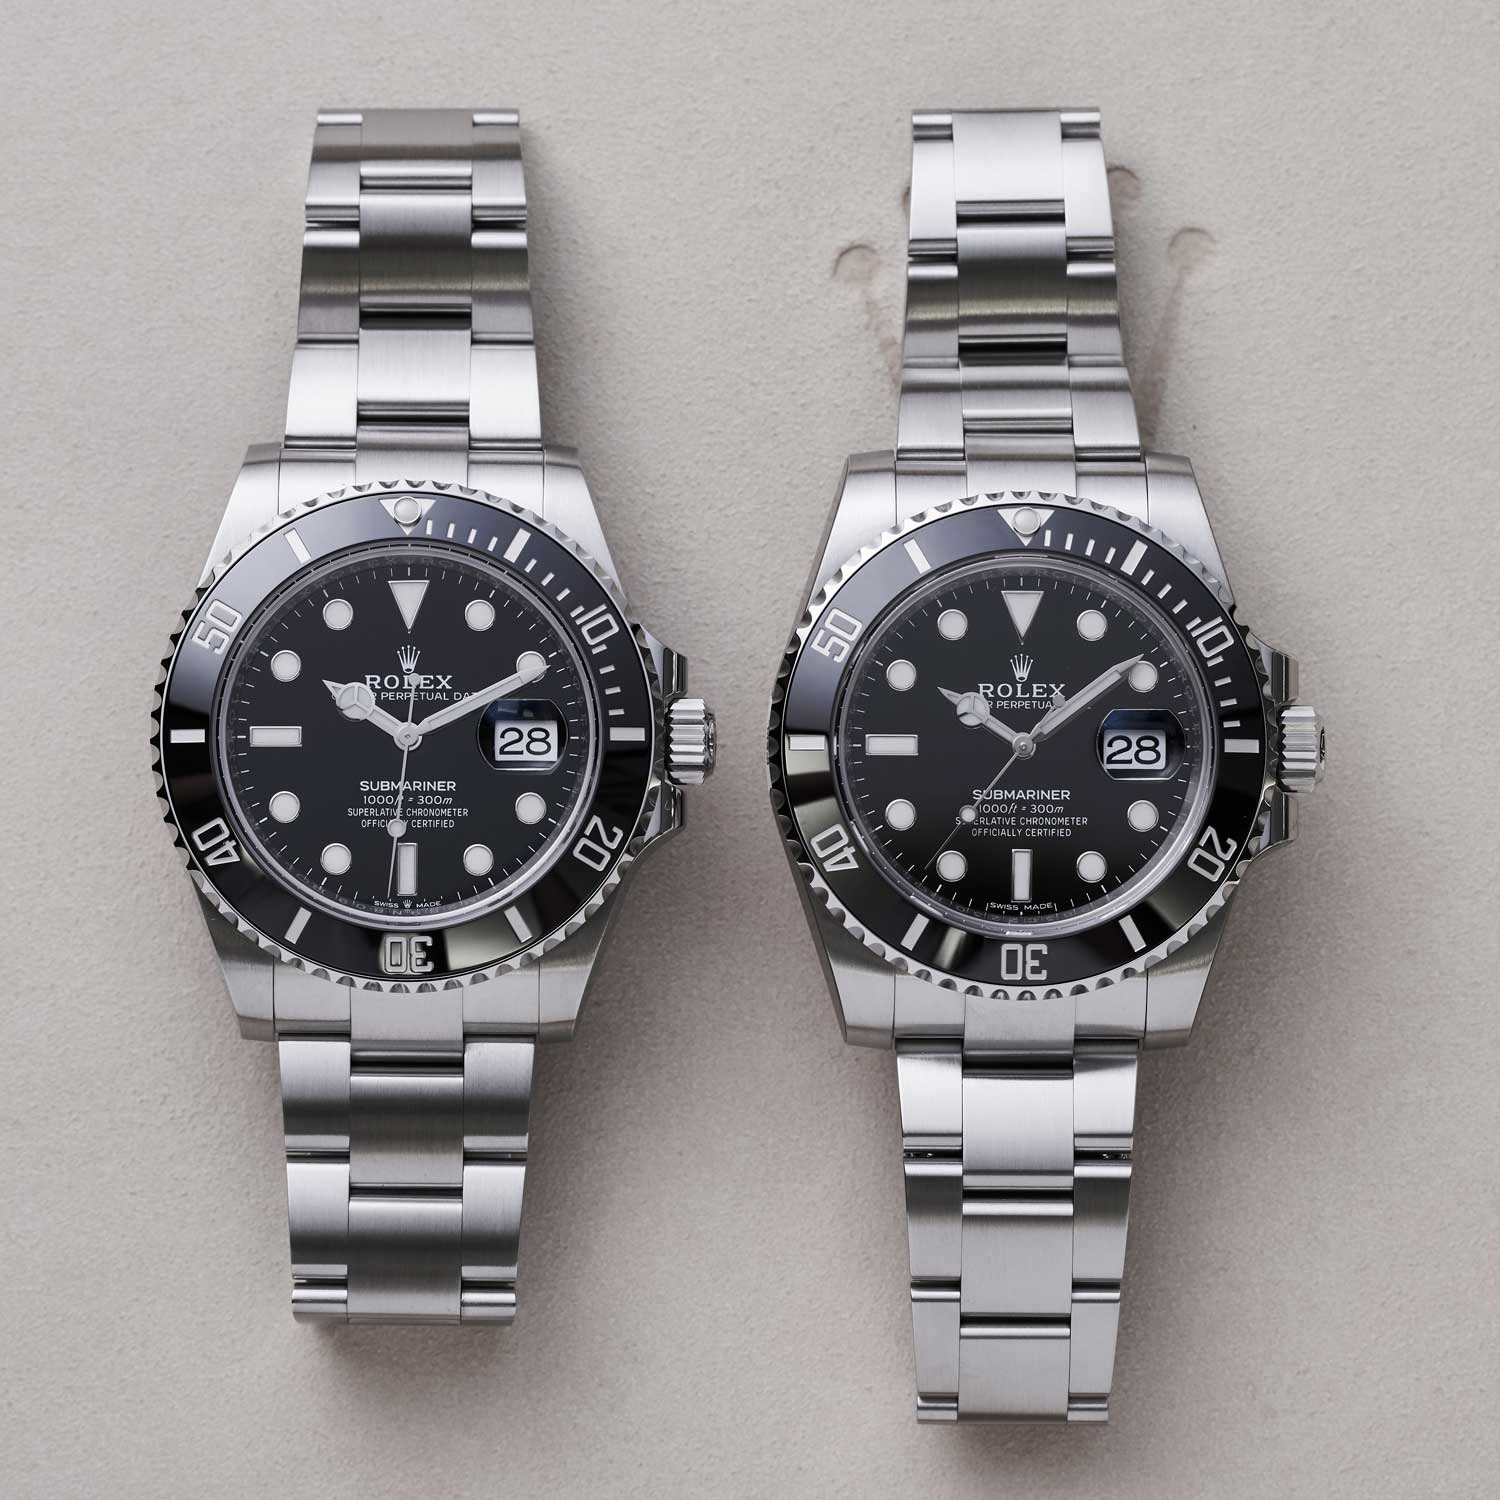 A side by side comparison of the 2020 ref. 126610 with the outgoing 2010 ref. 116610 both in Oystersteel; at 41mm the new Submariner case represents a marginal increase in size from its predecessors 40 mm in diameter and is still a full 2mm smaller than the 43mm diameter of its deep saturation dive sibling the Sea-Dweller. (©Revolution)